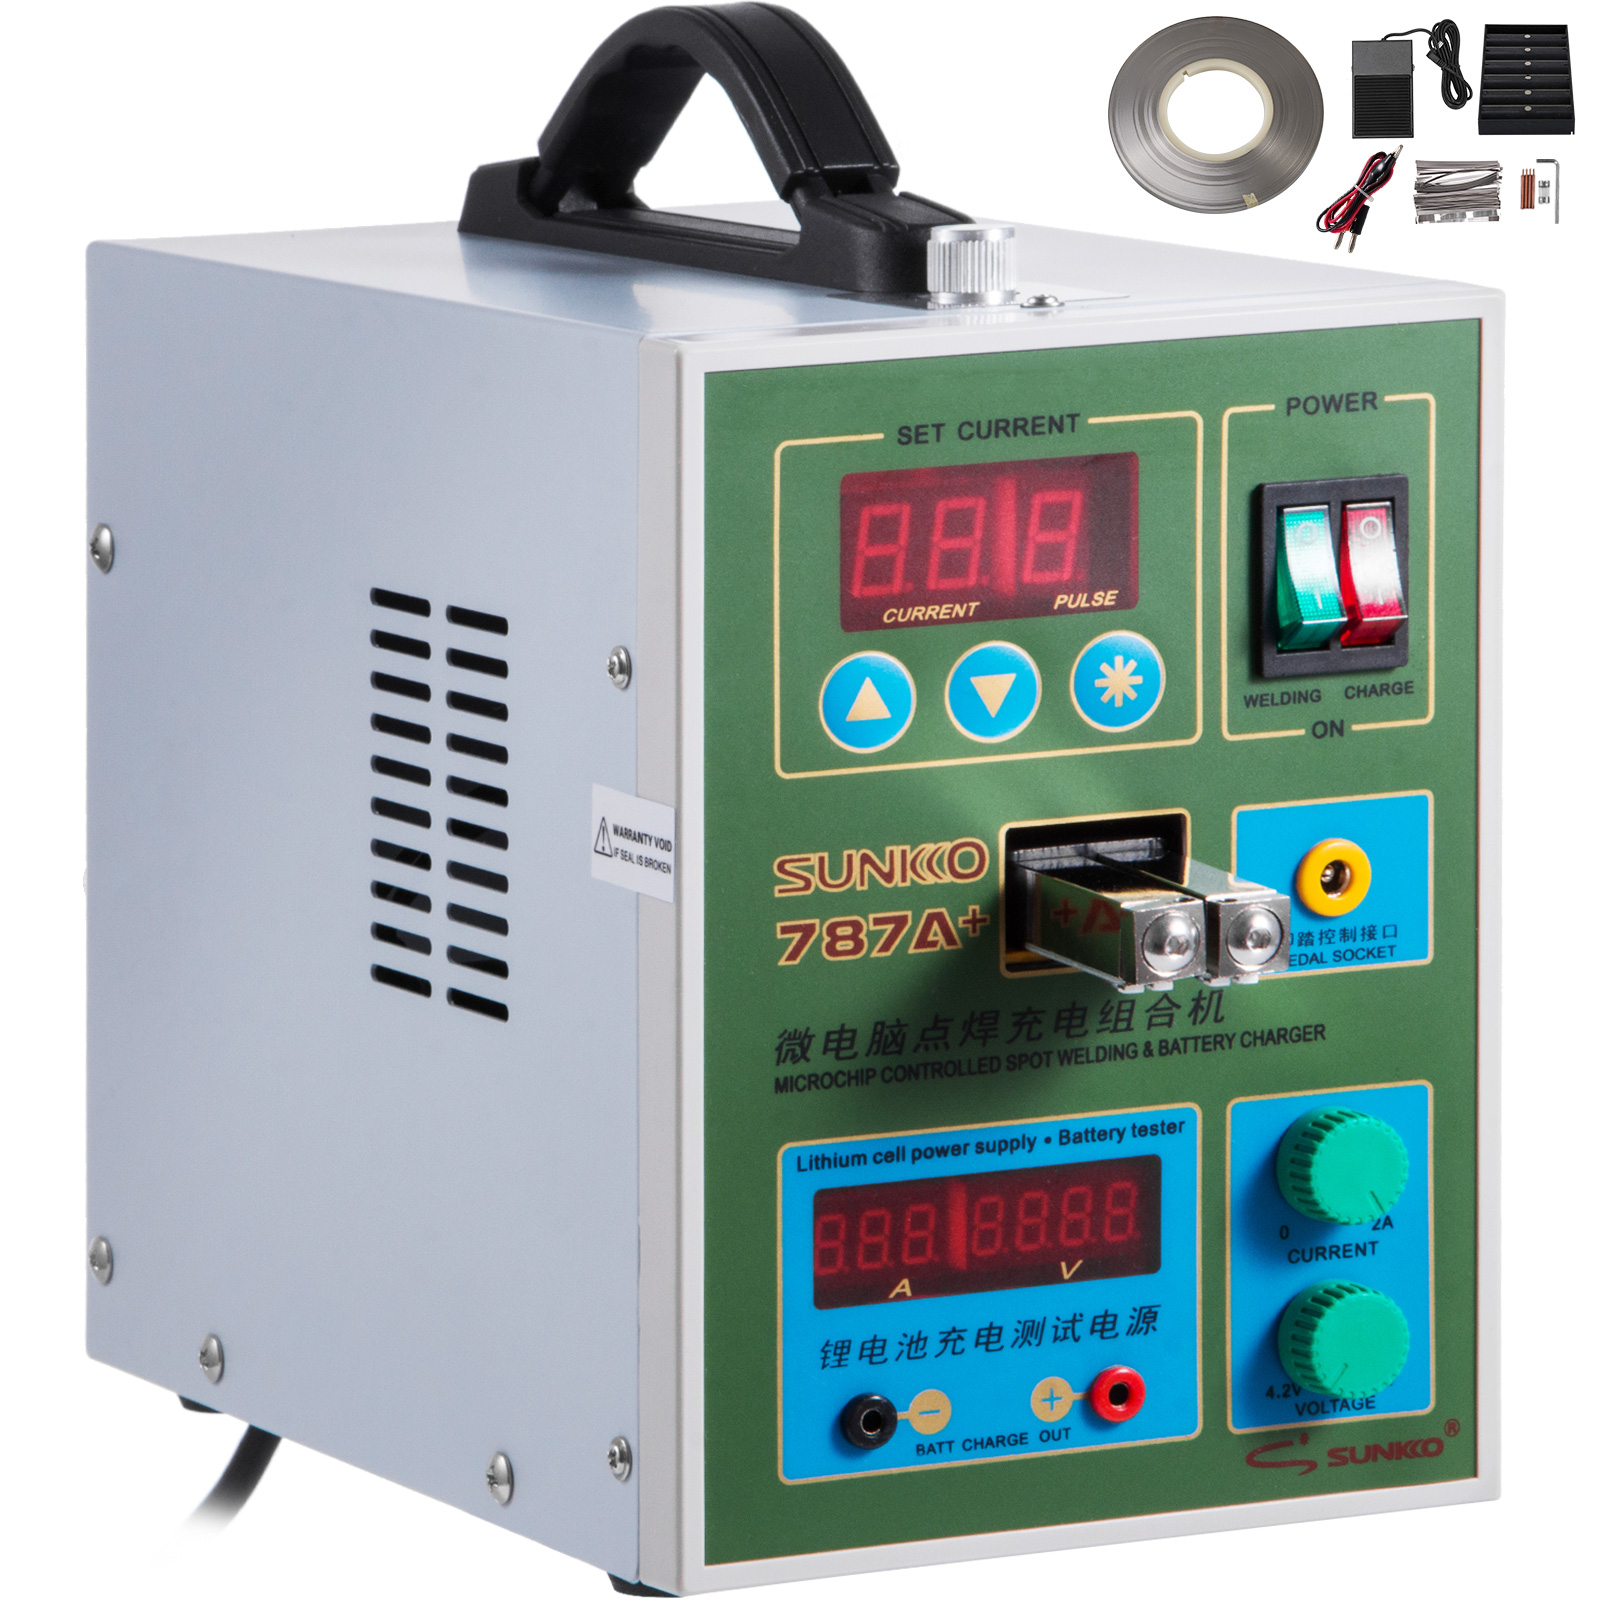 Details about 787A+ Pulse Spot Welder for 18650 & Battery Pack Charger 1Kg  Nickel Strip 500A